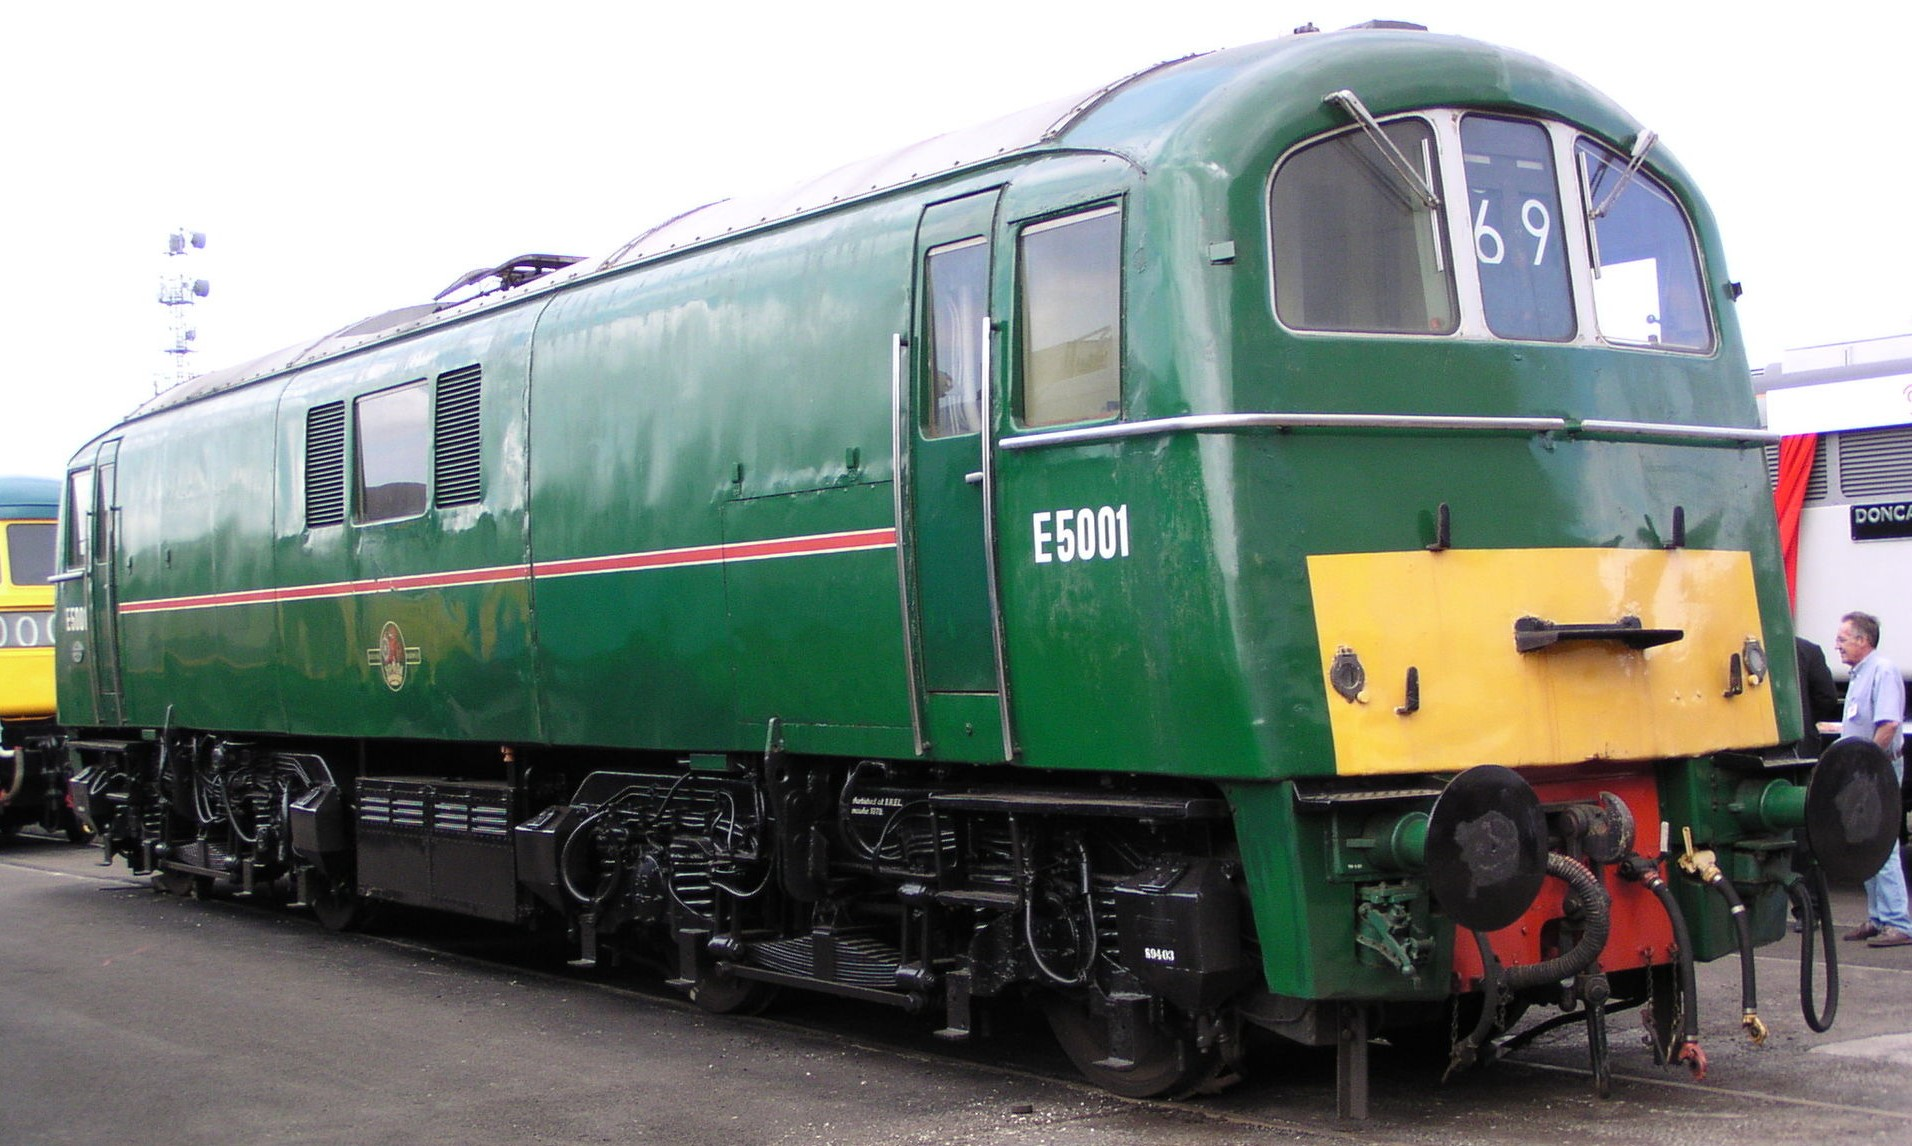 E5001 at Doncaster Works in July 2003. © Phil Scott